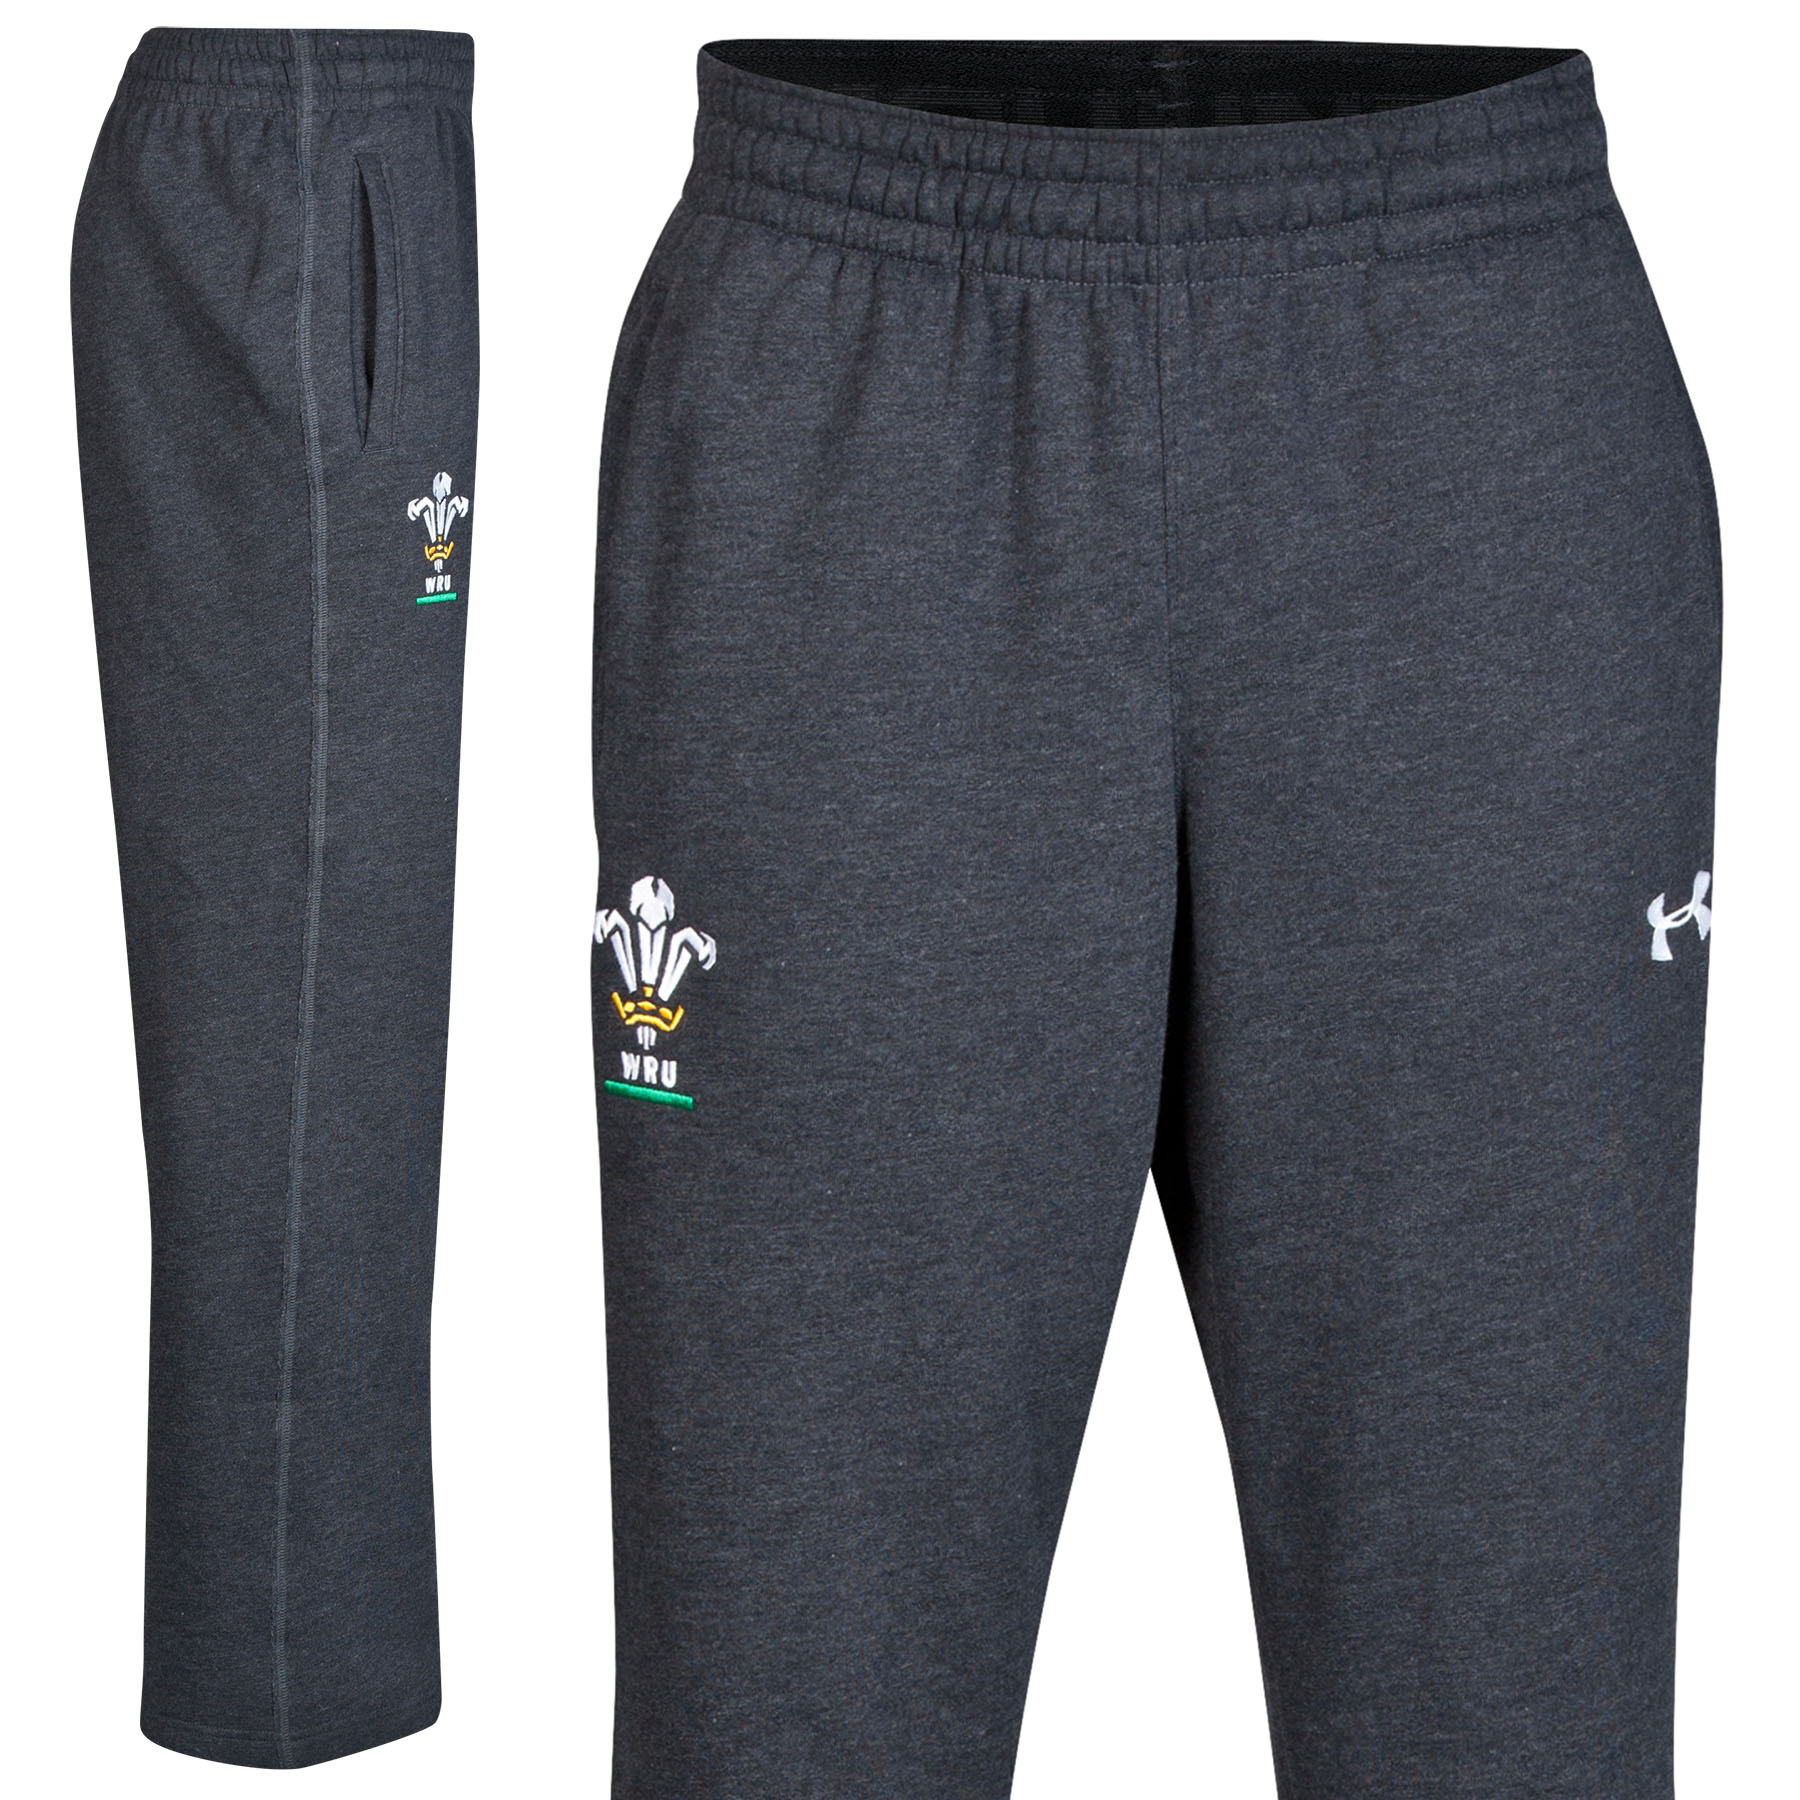 Wales Rugby Union IOF Storm Fleece Pant 2014/15 Black